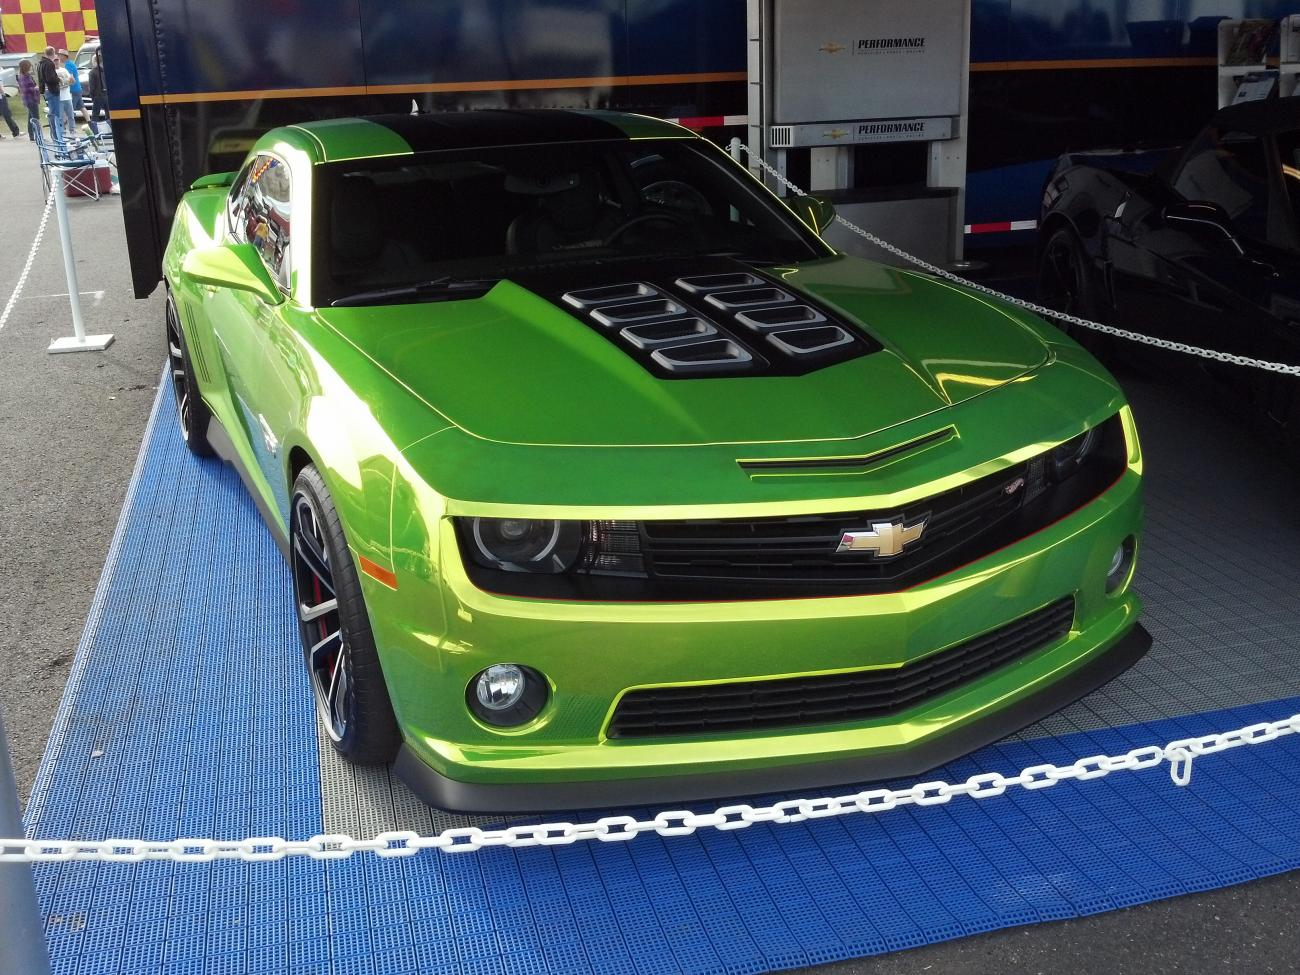 New Hot Wheels Camaro Color Iridescent Green Camaro5 Chevy Hotwheels 12 Zl1 Attached Images